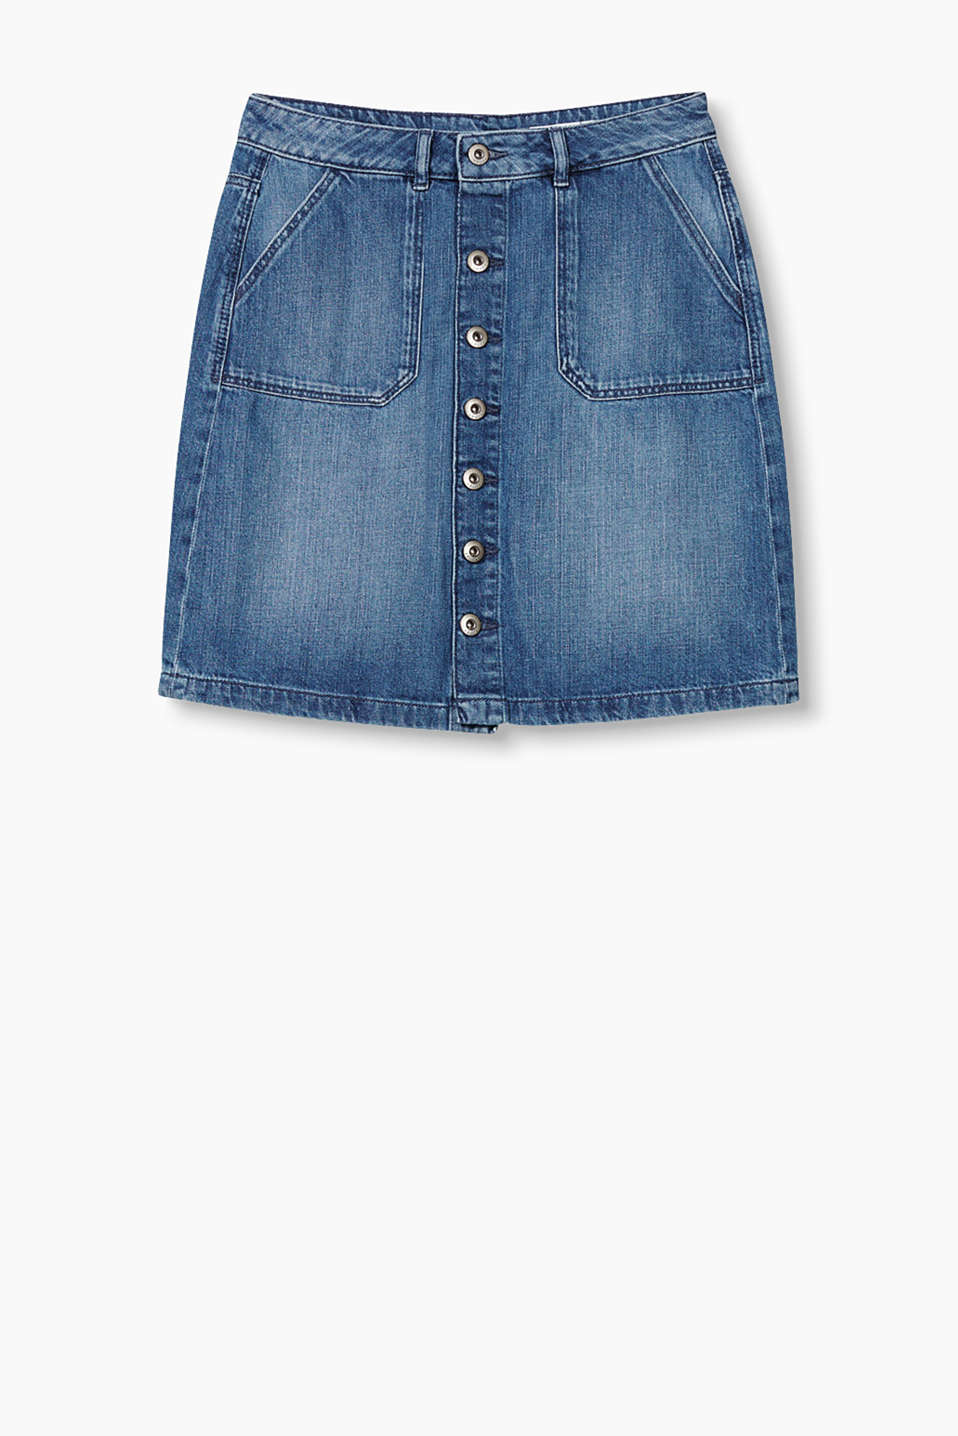 Button-fastening denim skirt with patch pockets and casual washed-out effects.